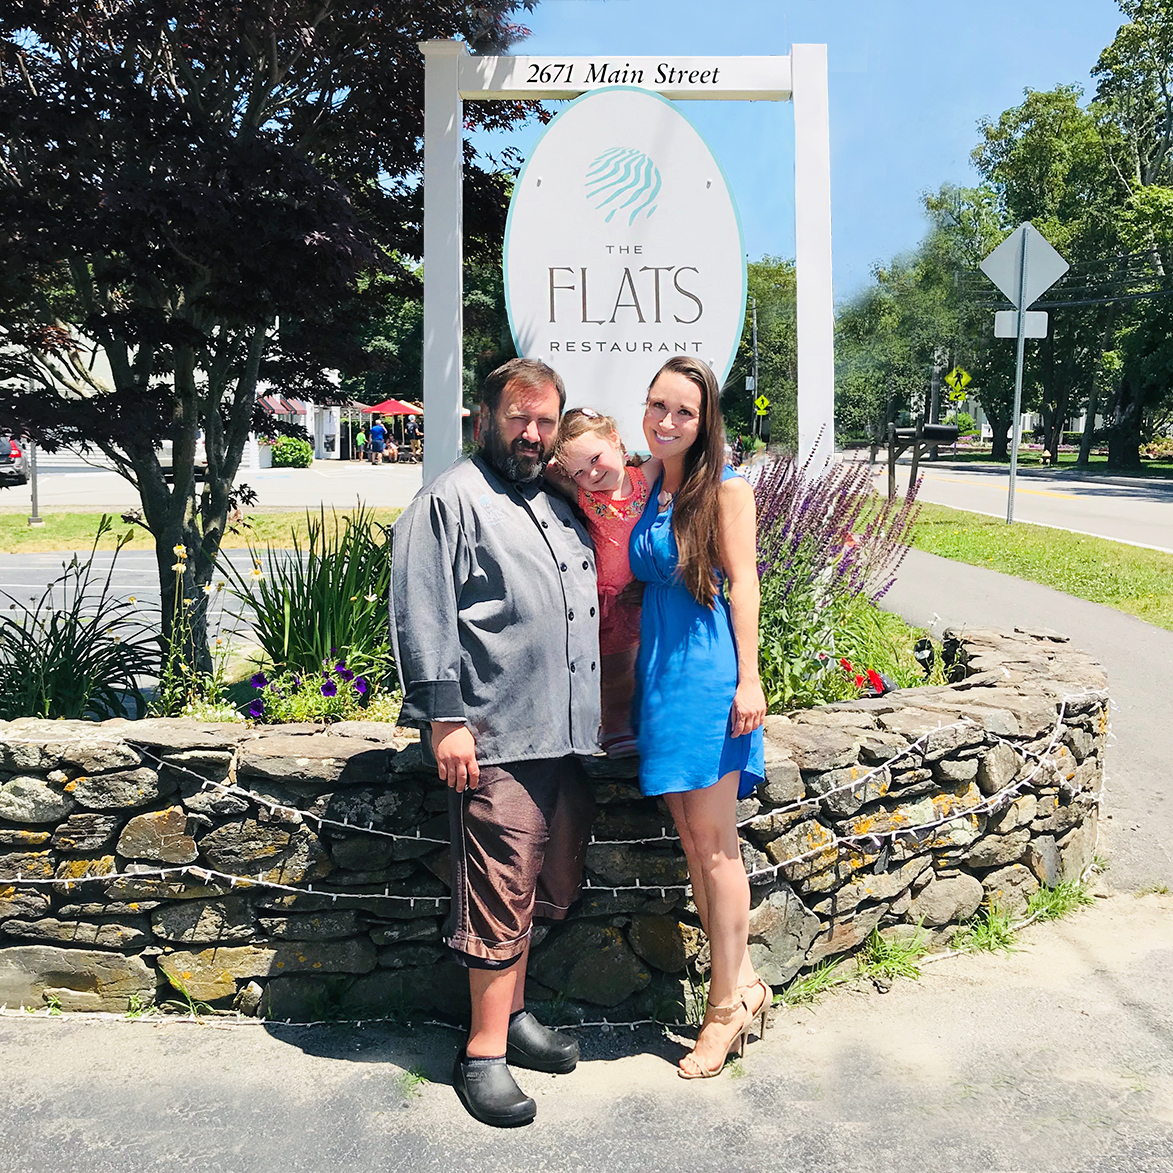 We strive to earn your trust as your favorite Cape Cod restaurant - Love, Mason, Ksenia, and Keira Pryme and The Flats staff